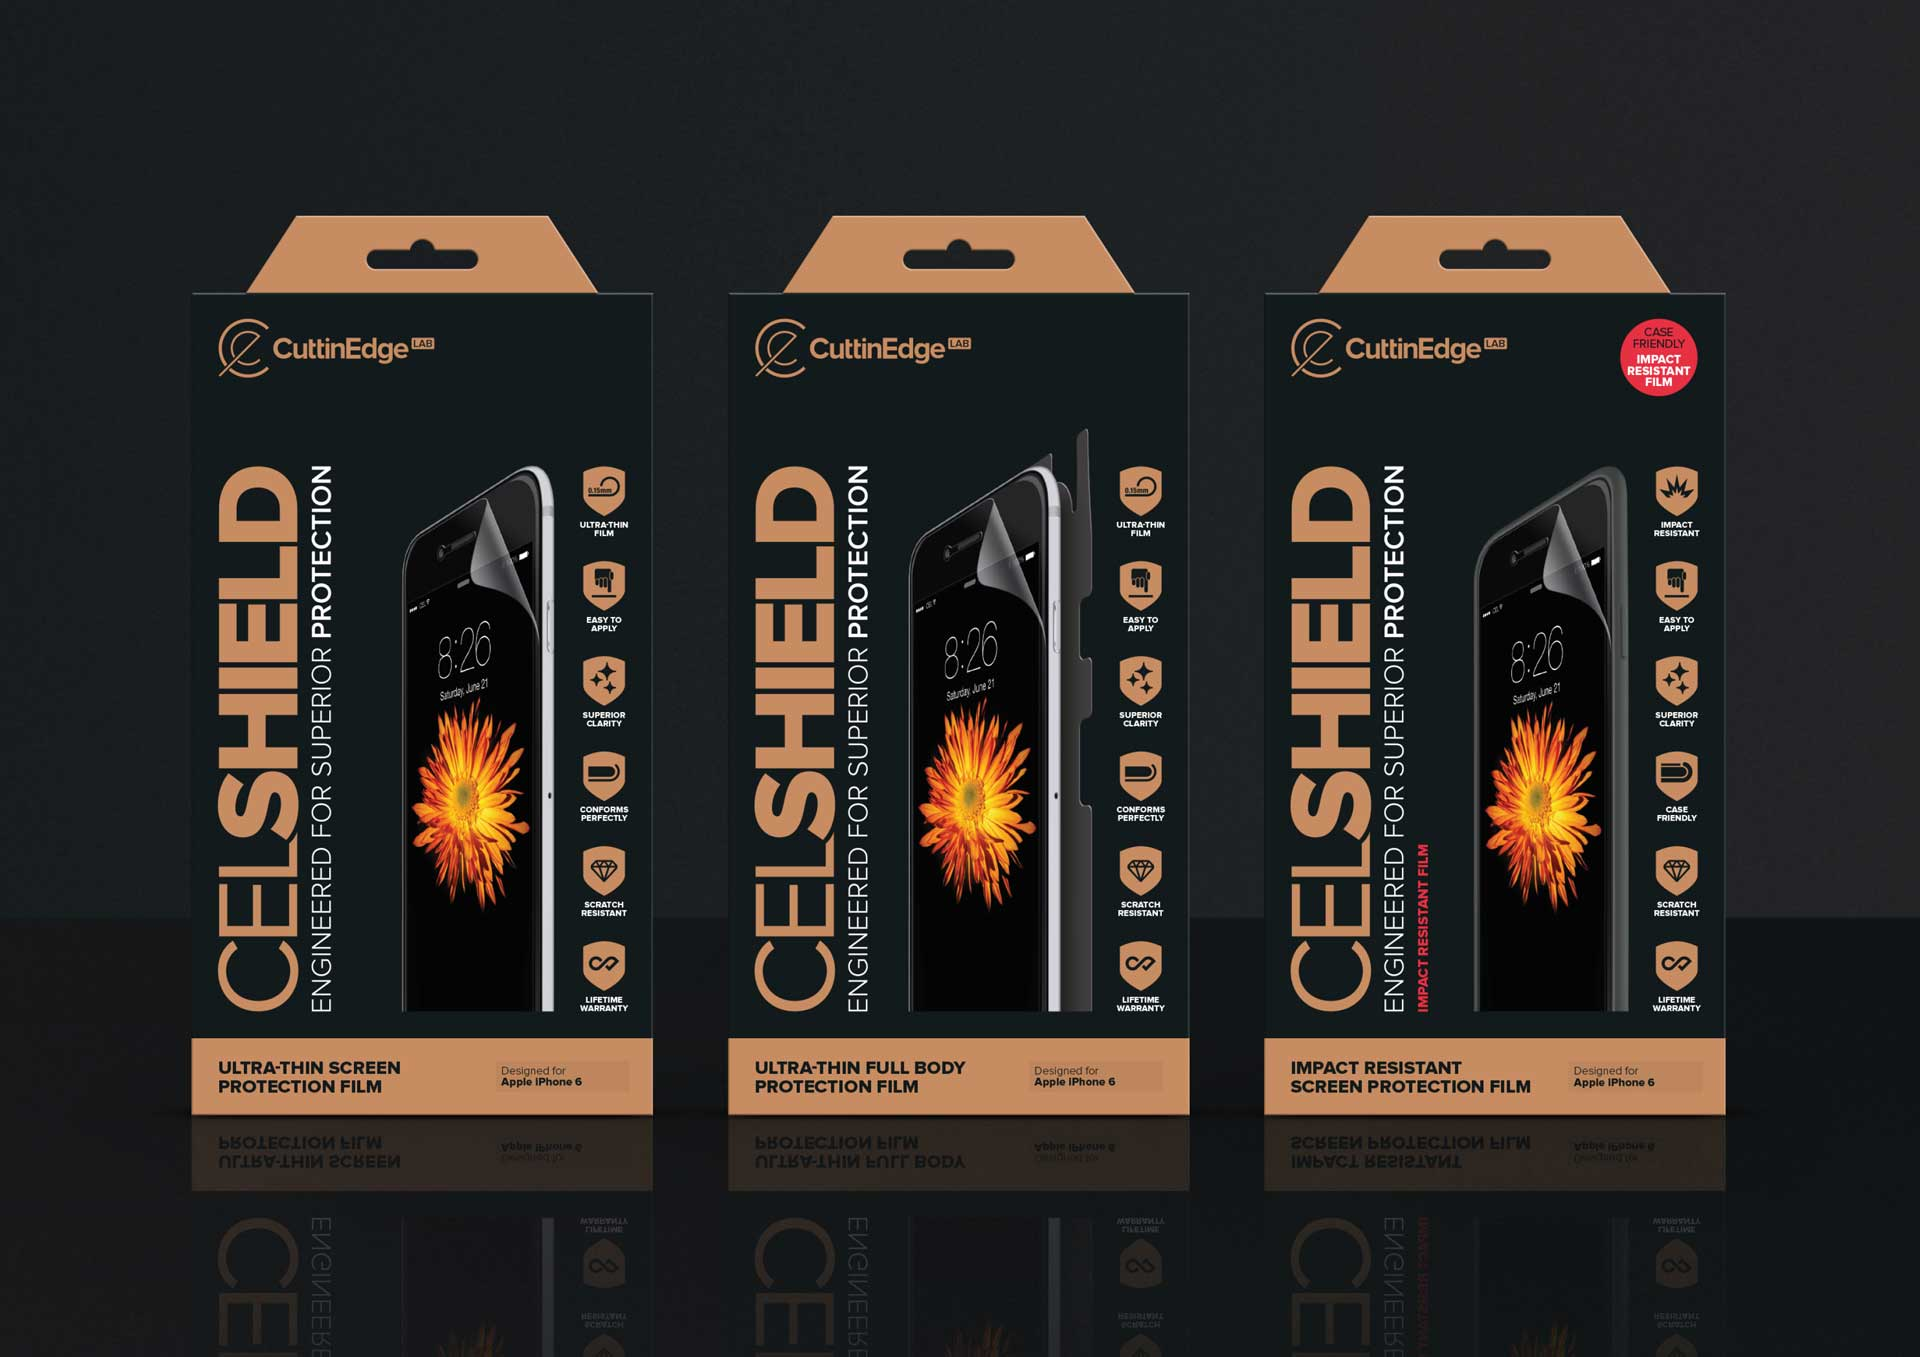 cuttinedge-labs-celshield-celwrap-packaging-2